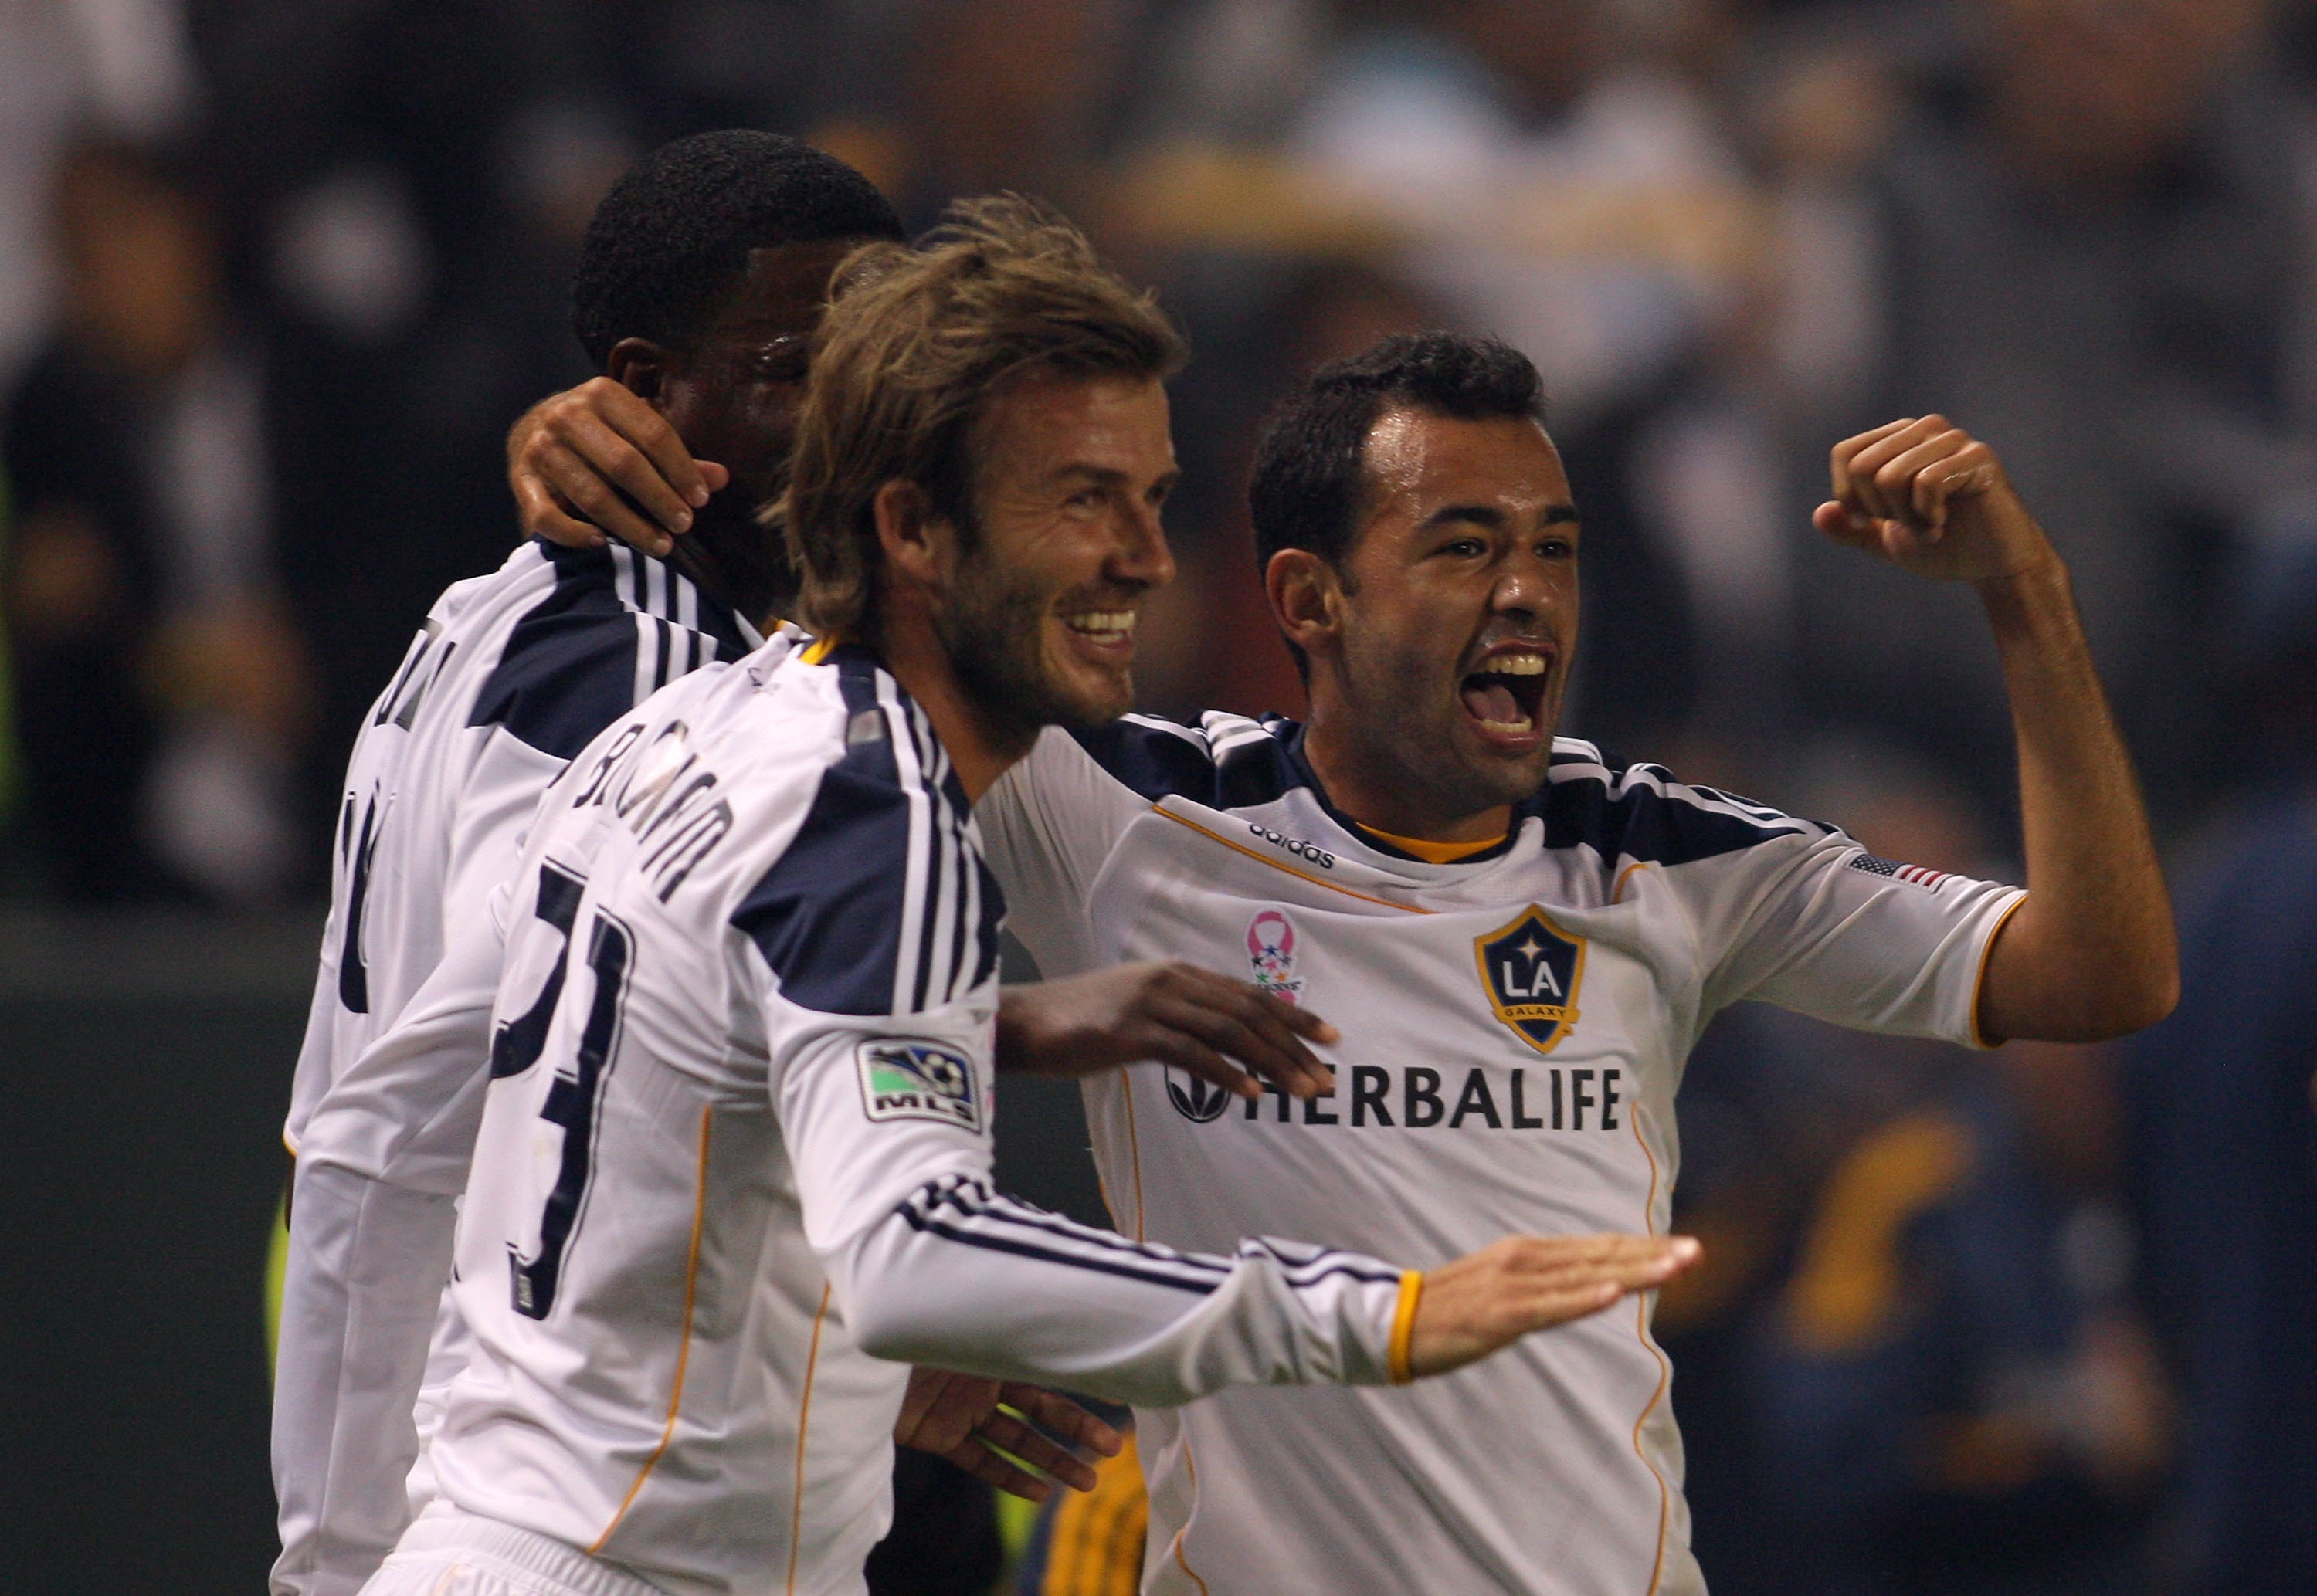 CARSON, CA - OCTOBER 16:  Edson Buddle #14, David Beckham #23 and Juninho #19 of the Los Angeles Galaxy celebrate Buddle's first half goal against the Colorado Rapids during the MLS match at The Home Depot Center on October 16, 2010 in Carson, California.